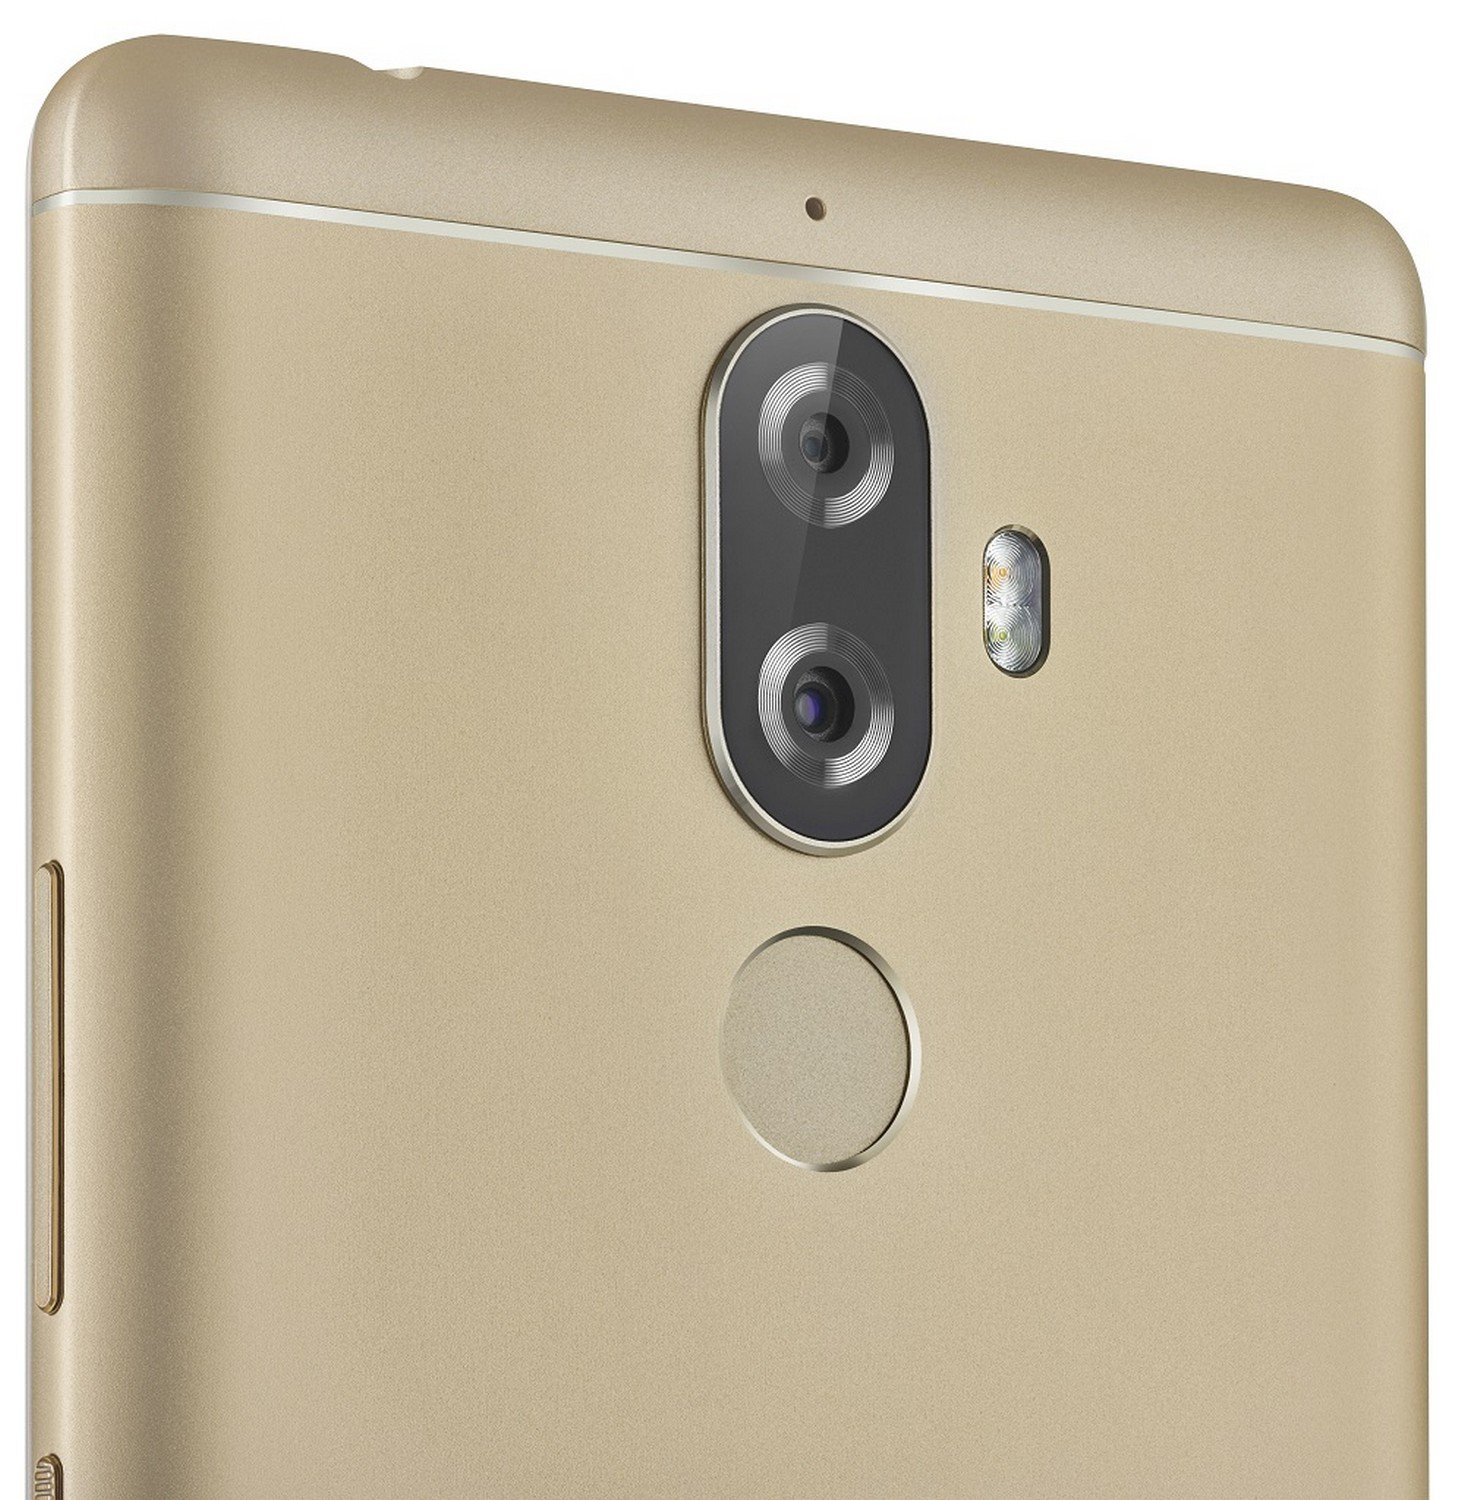 lenovo k8 note fine gold 4gb with new system update